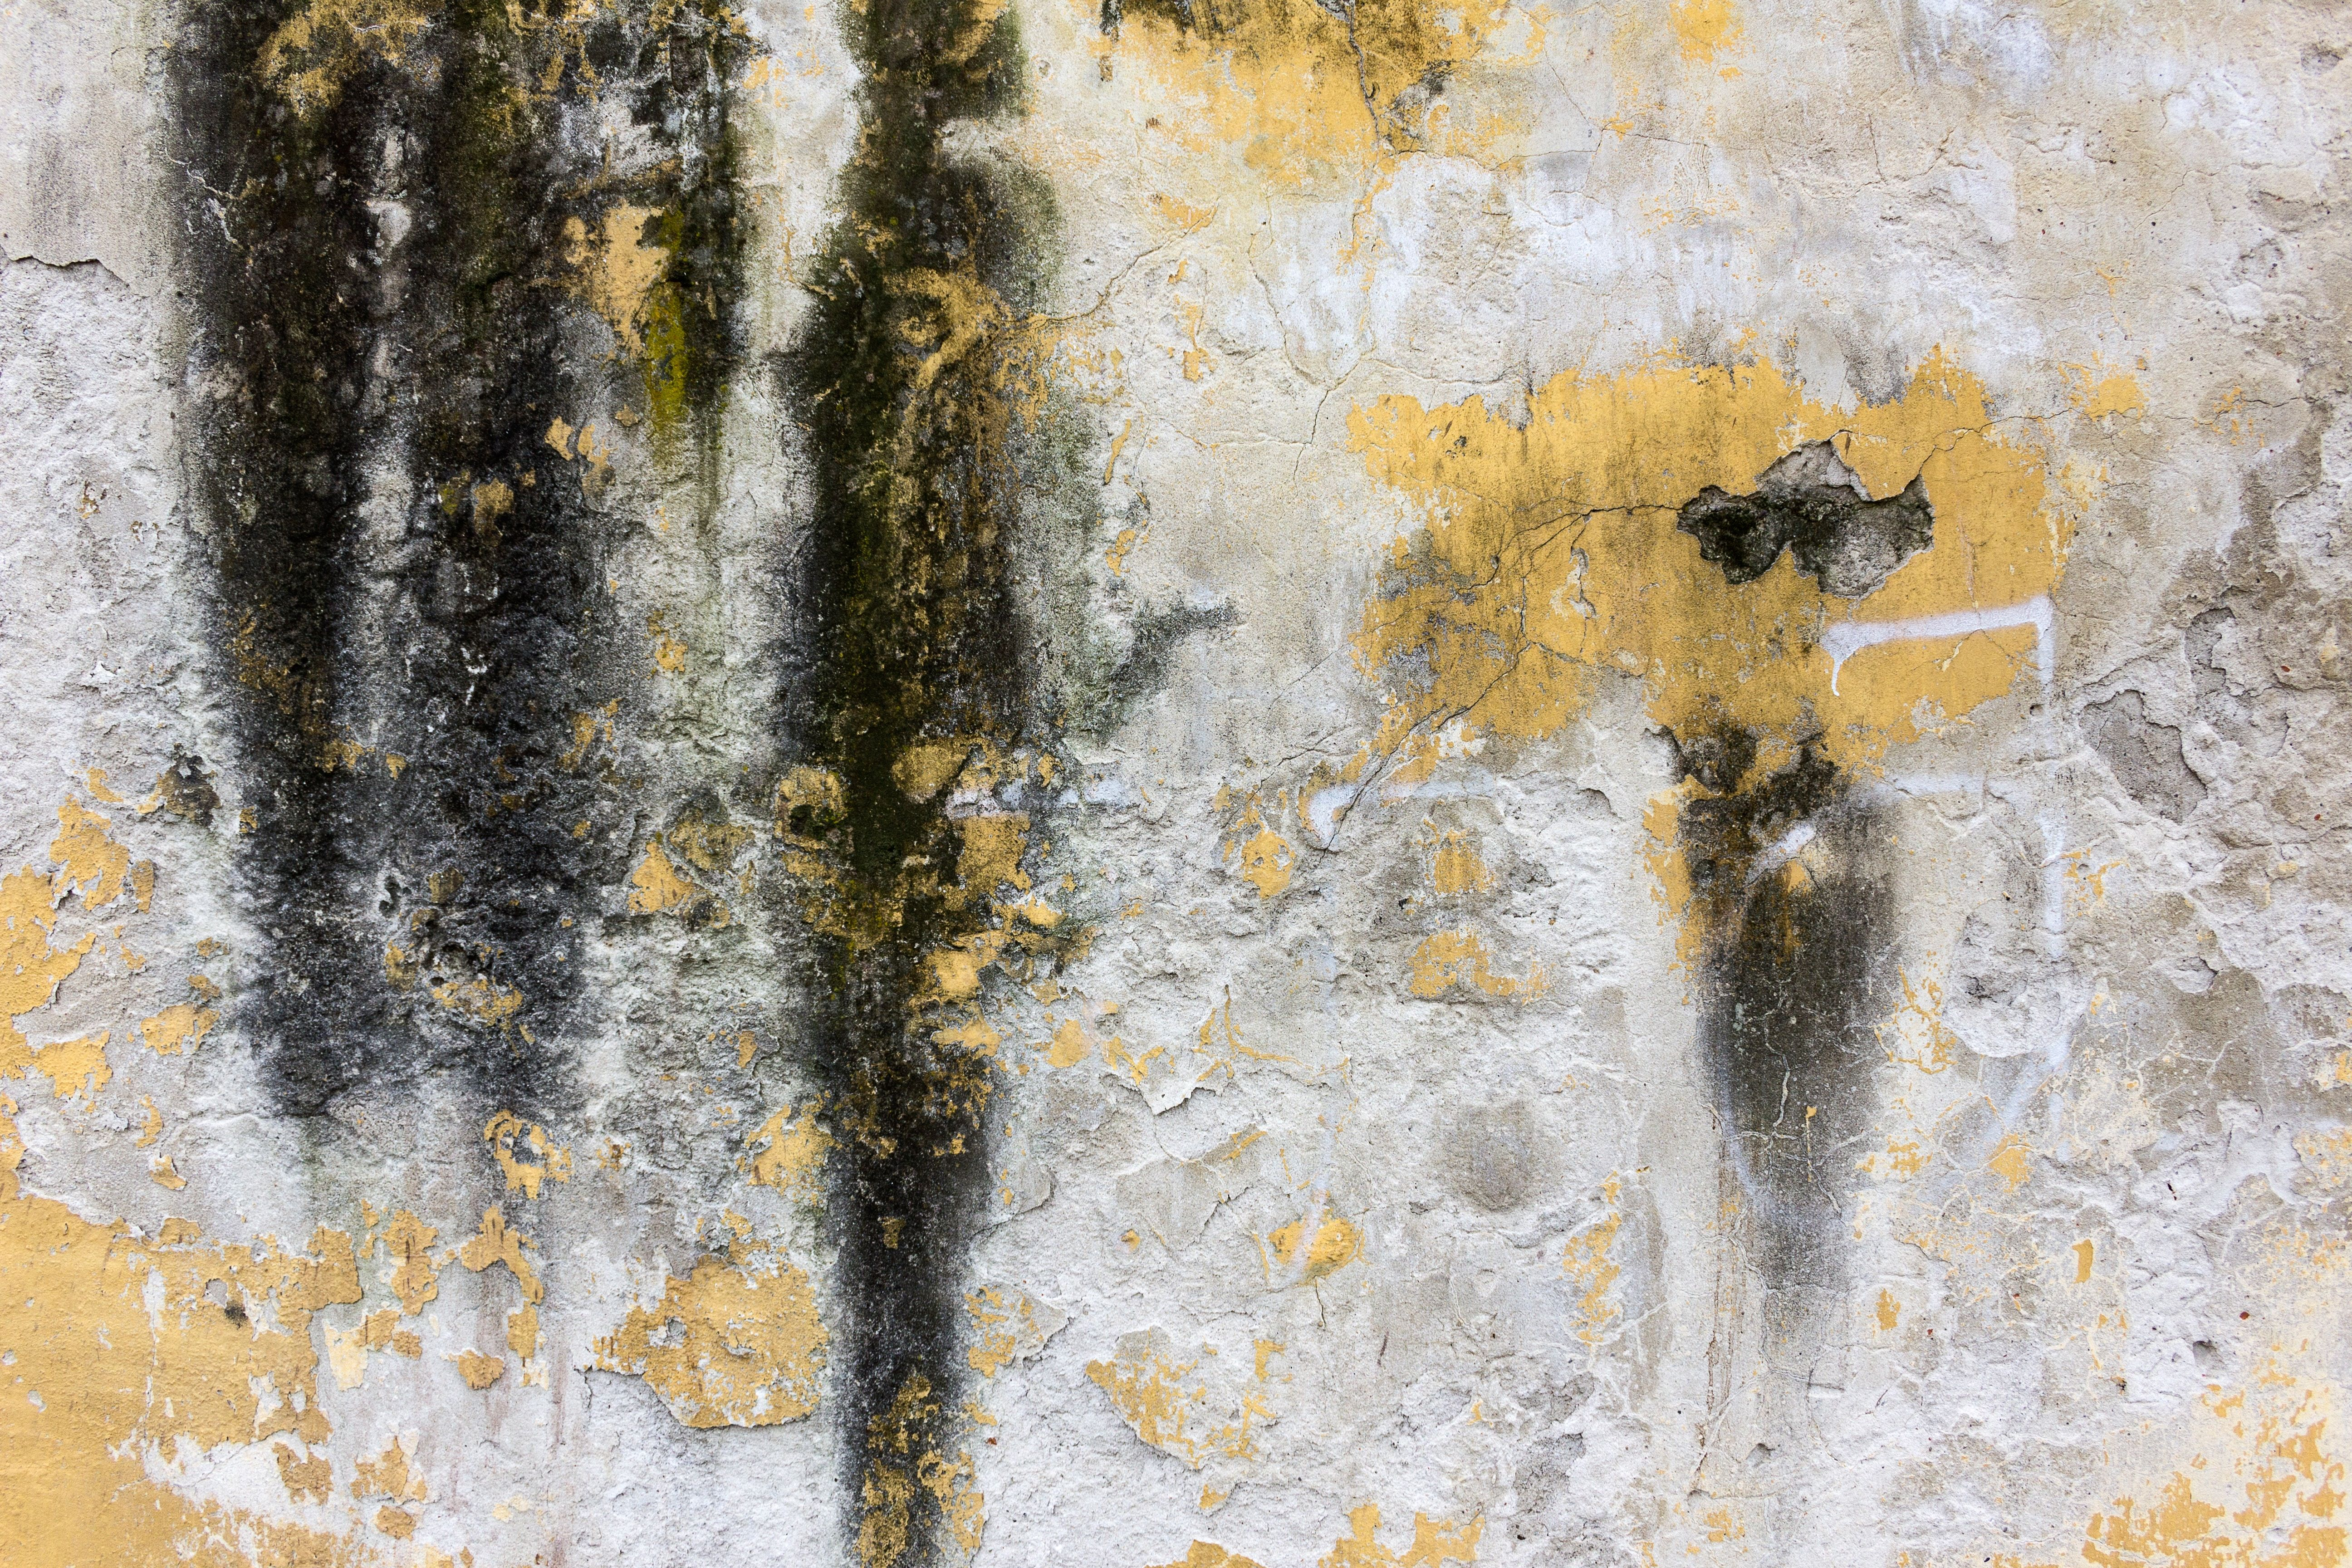 Florida Mold Inspection And Mold Removal Mold Damage Restoration Servicemaster Cool Backgrounds Hd Abstract Photos Free Textures